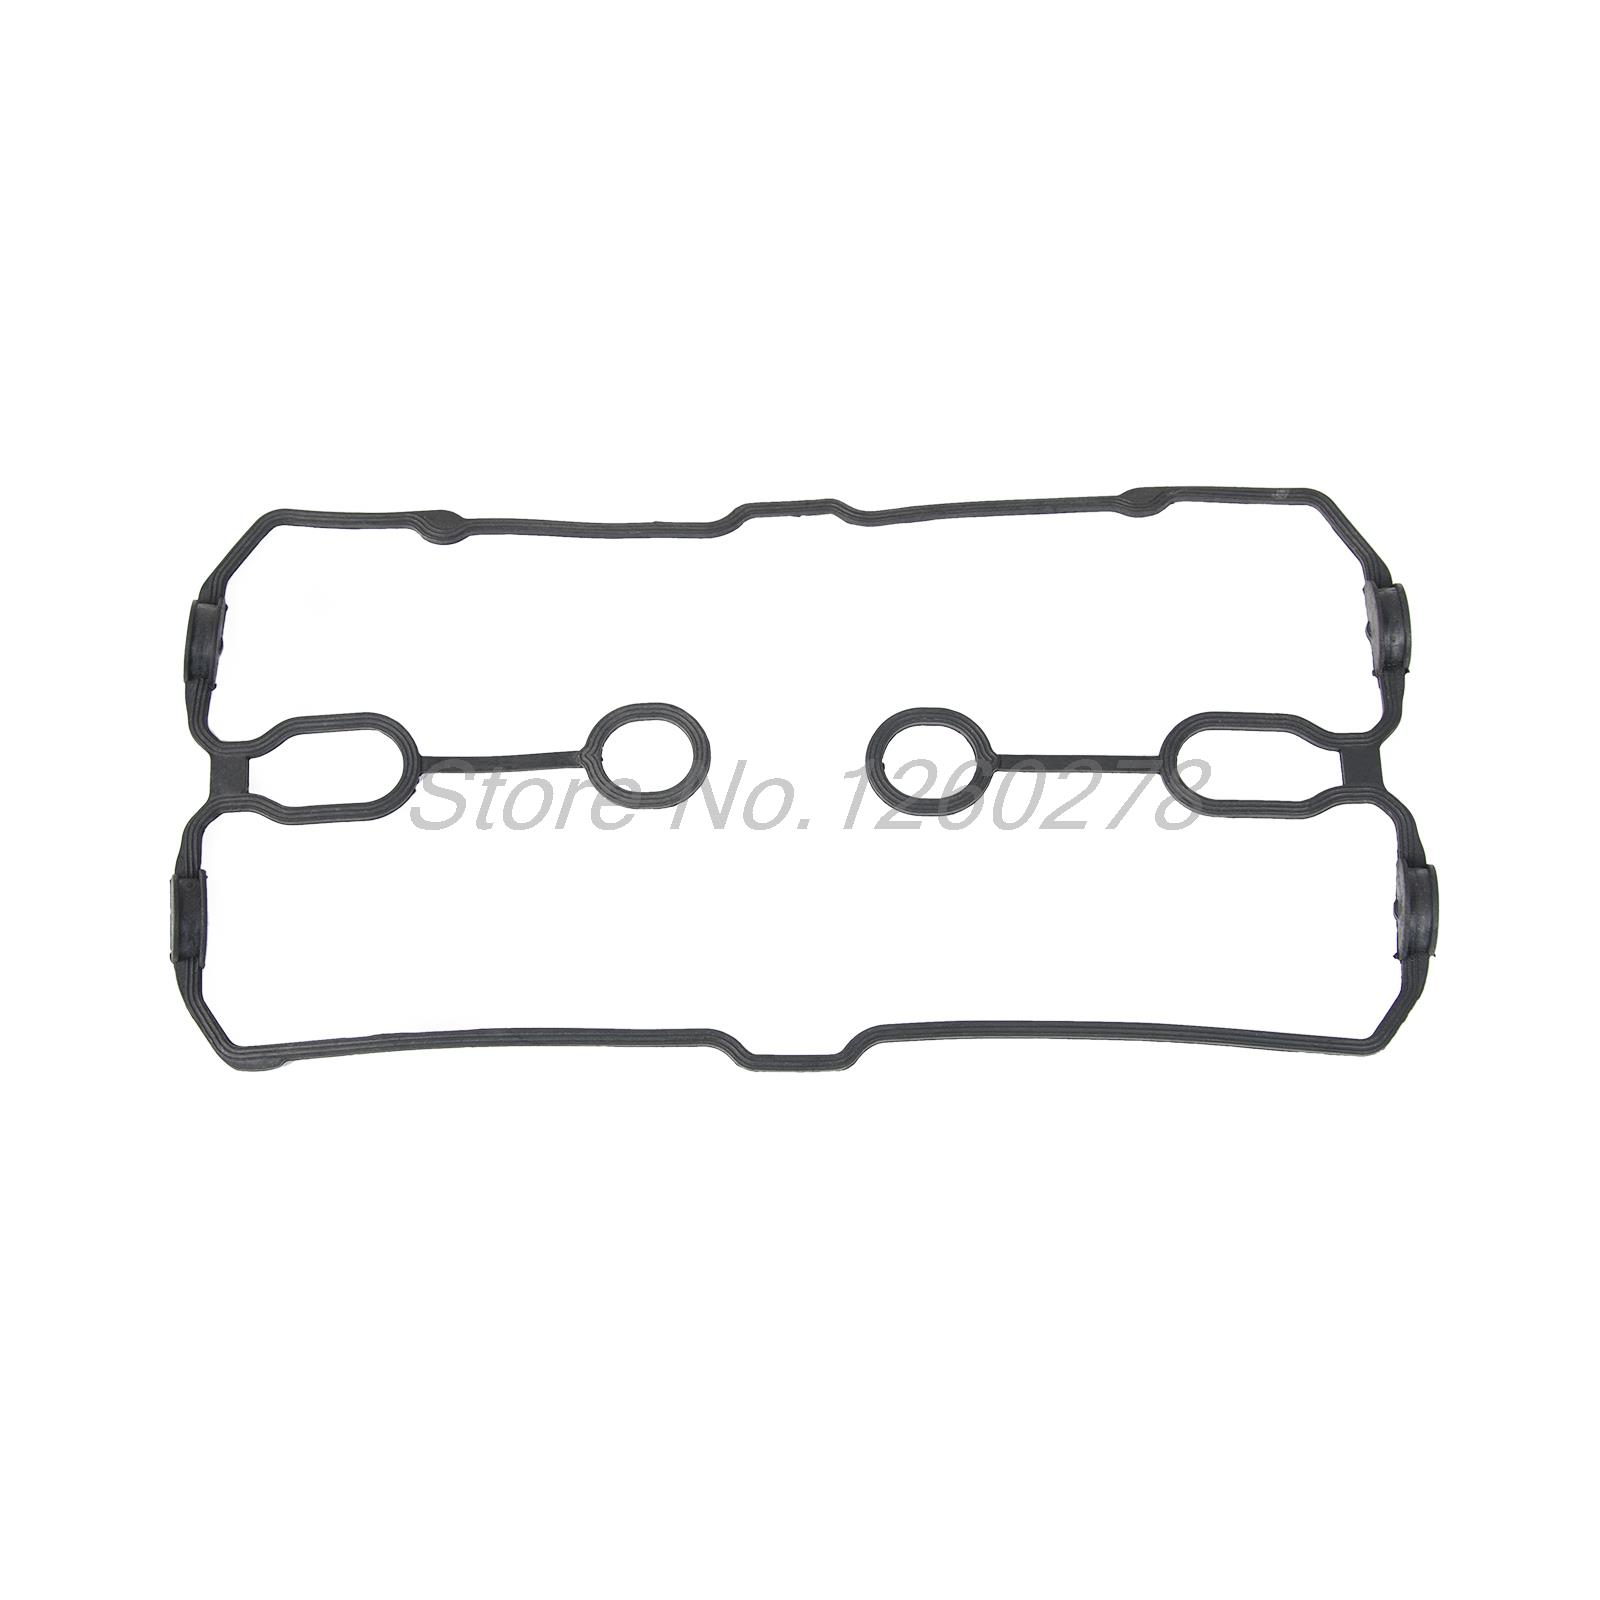 Motorcycle Parts Cylinder Head Cover Gasket for Honda